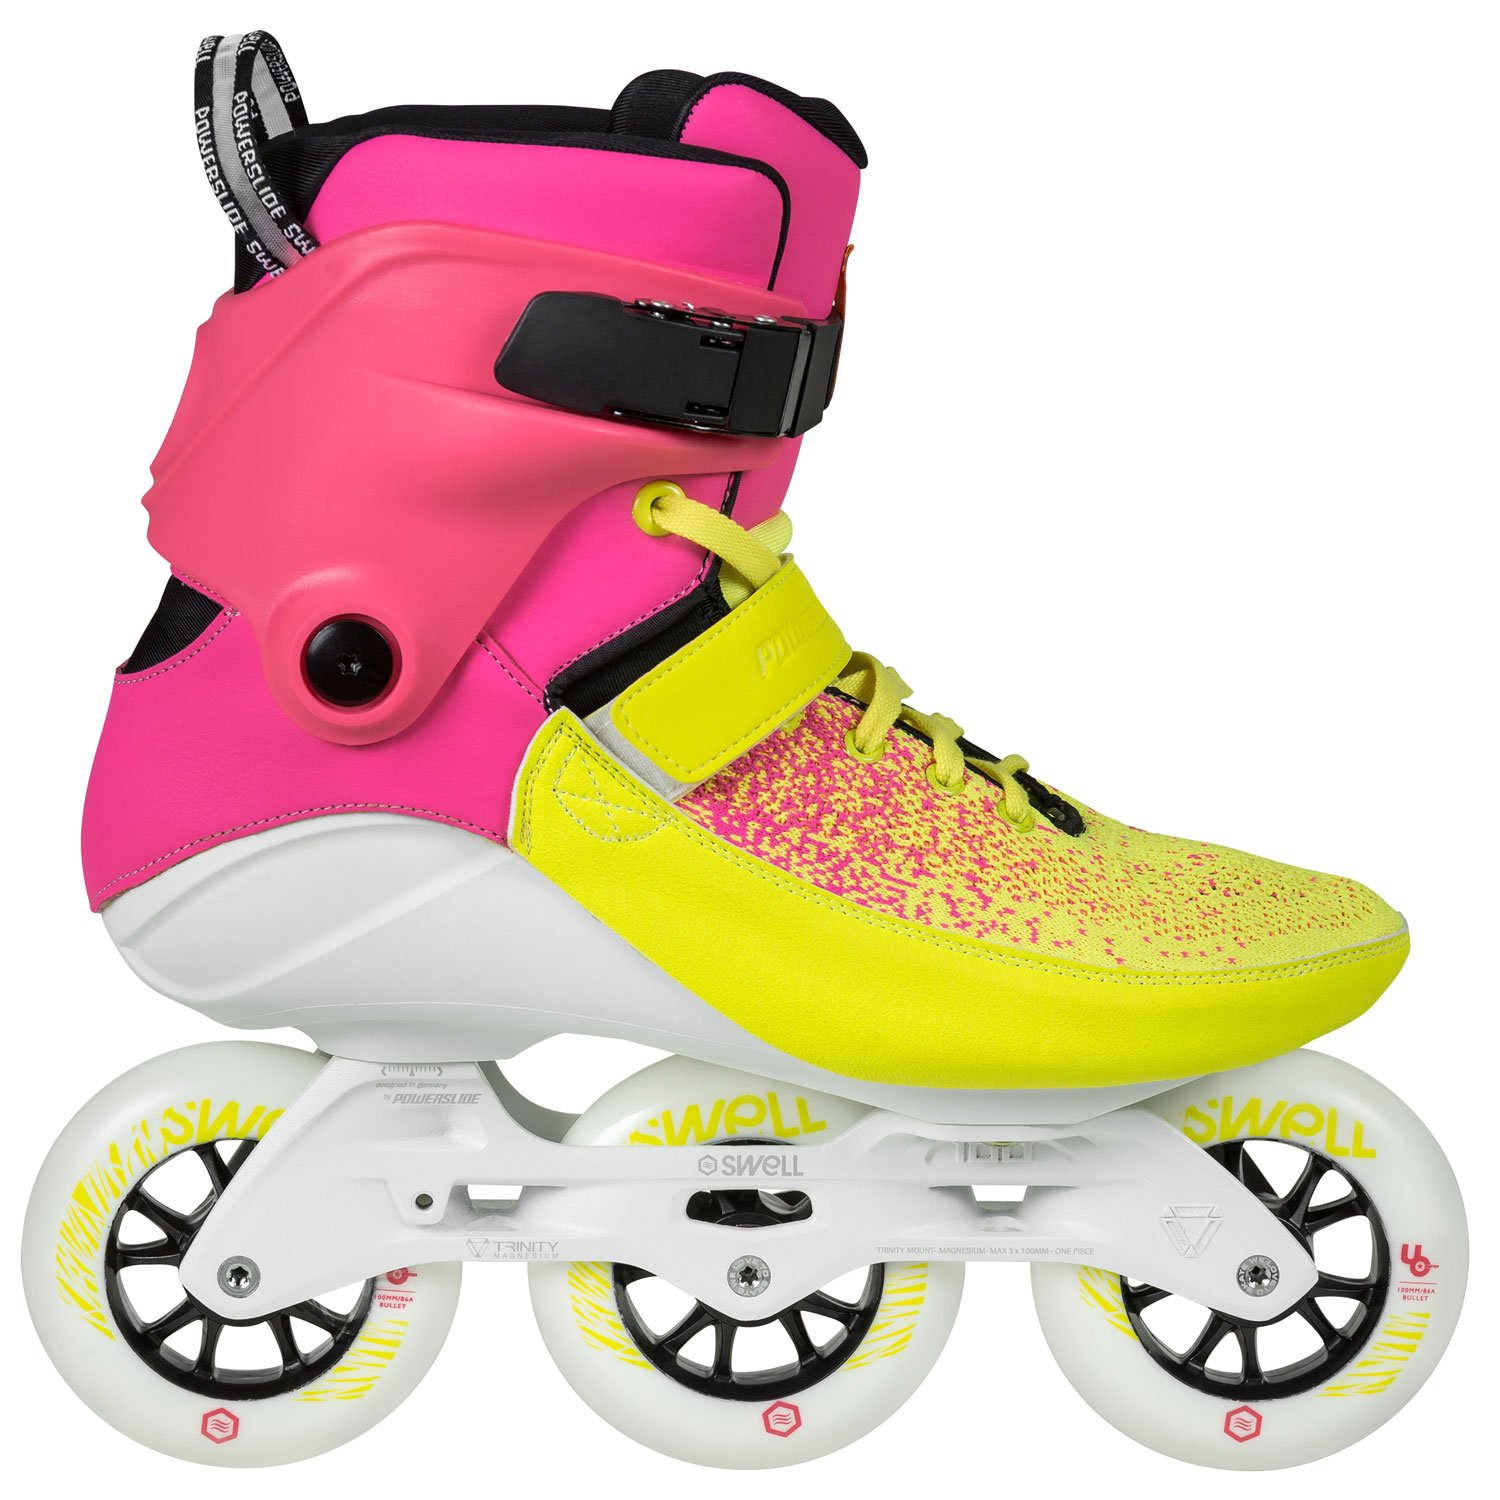 Powerslide Swell Multicolor Flair 100 Inline Fitness Speed Skates (EU43)